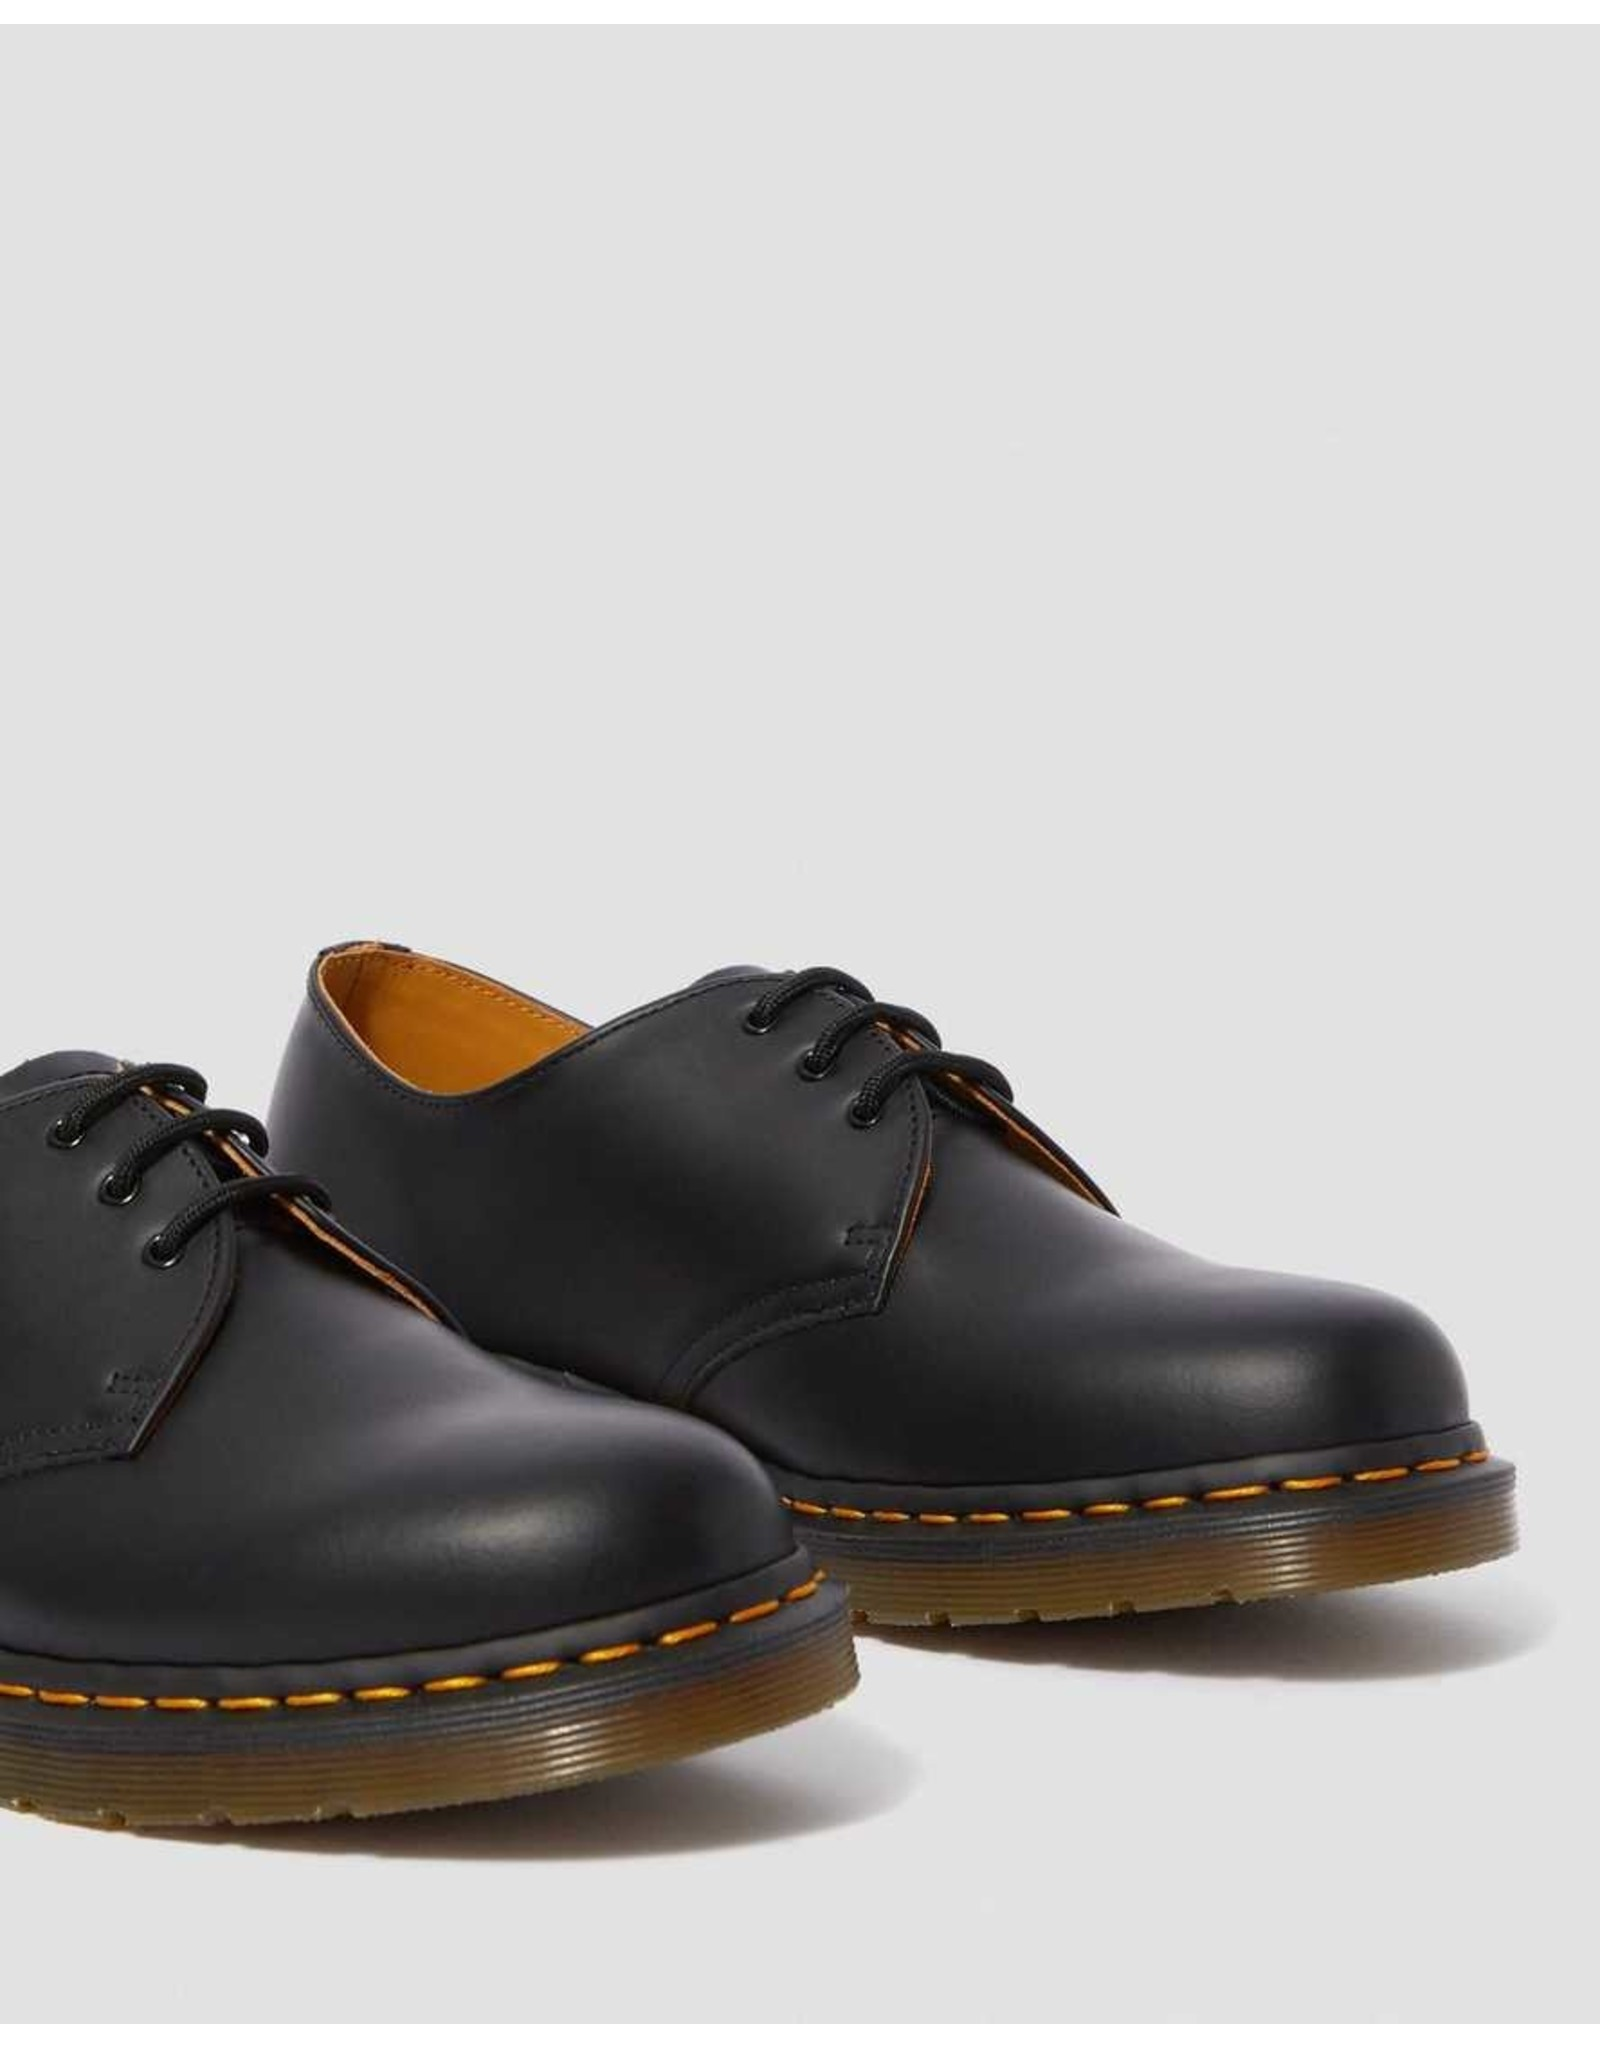 DR. MARTENS DR. MARTENS BLACK SMOOTH LEATHER OXFORD SHOES